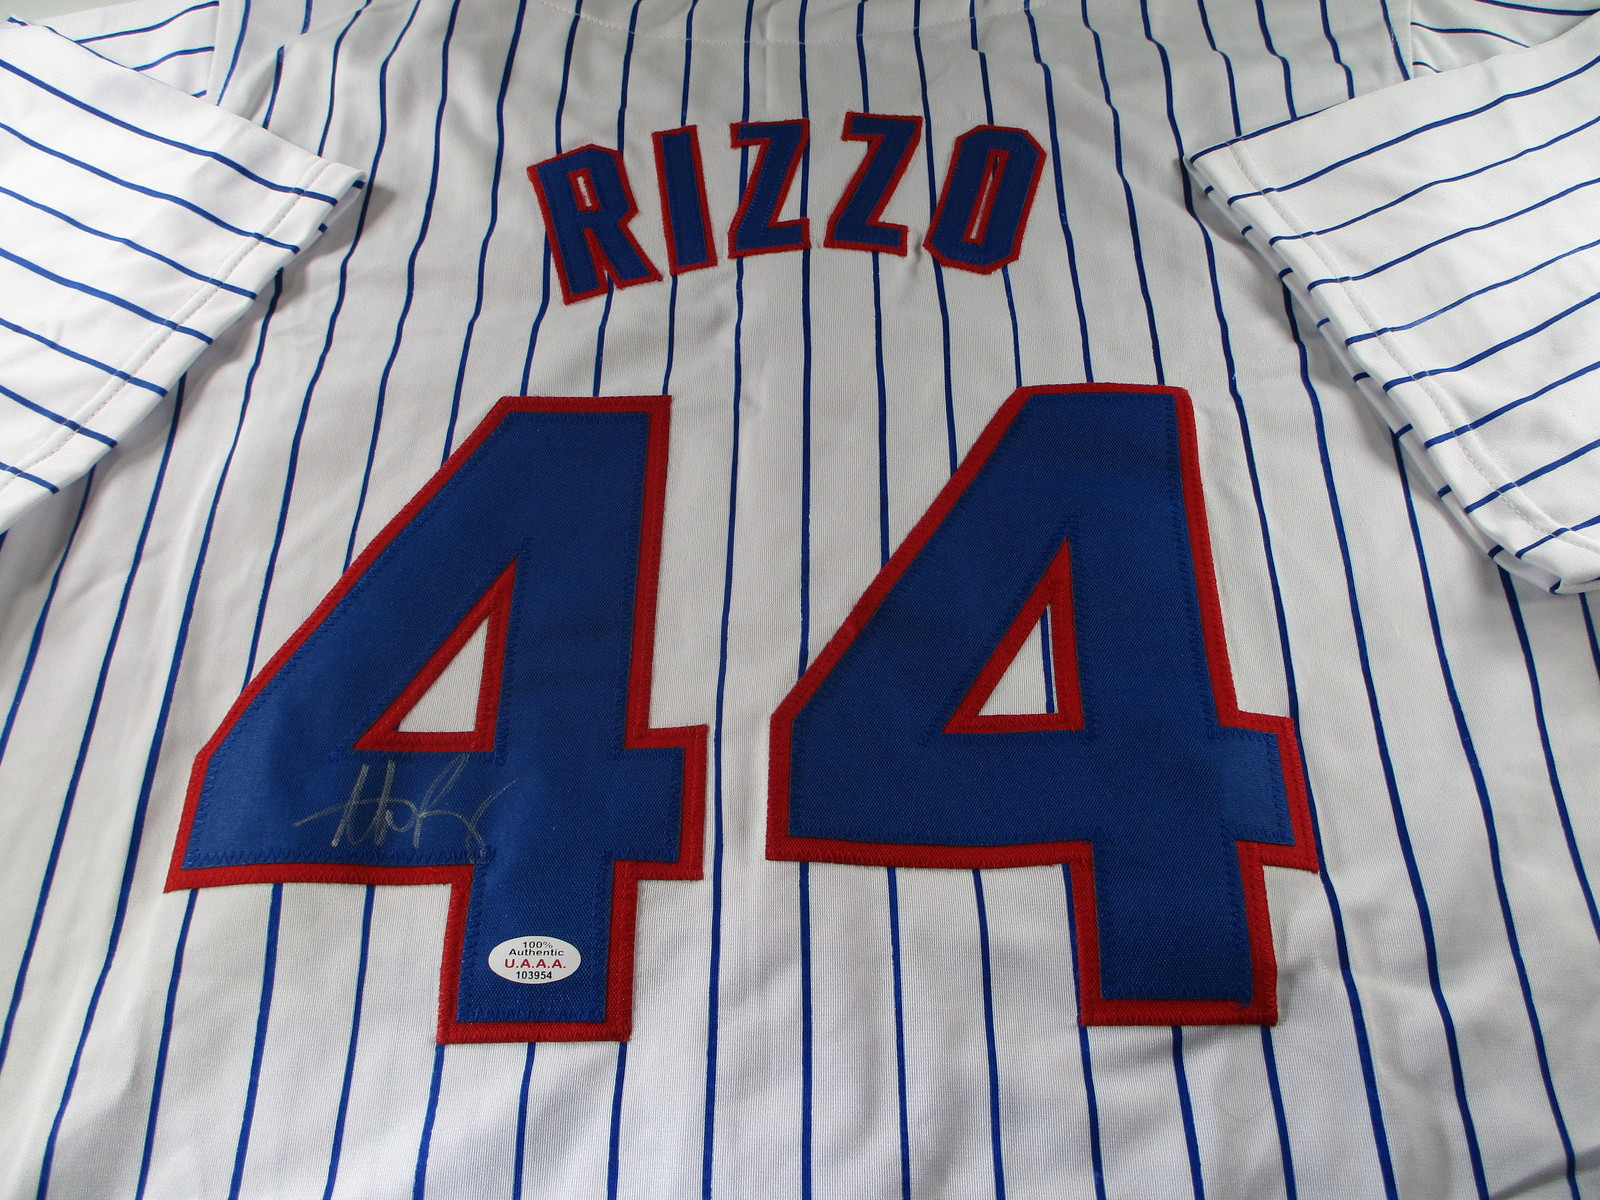 ANTHONY RIZZO / CHICAGO CUBS / AUTOGRAPHED CHICAGO CUBS CUSTOM JERSEY / COA